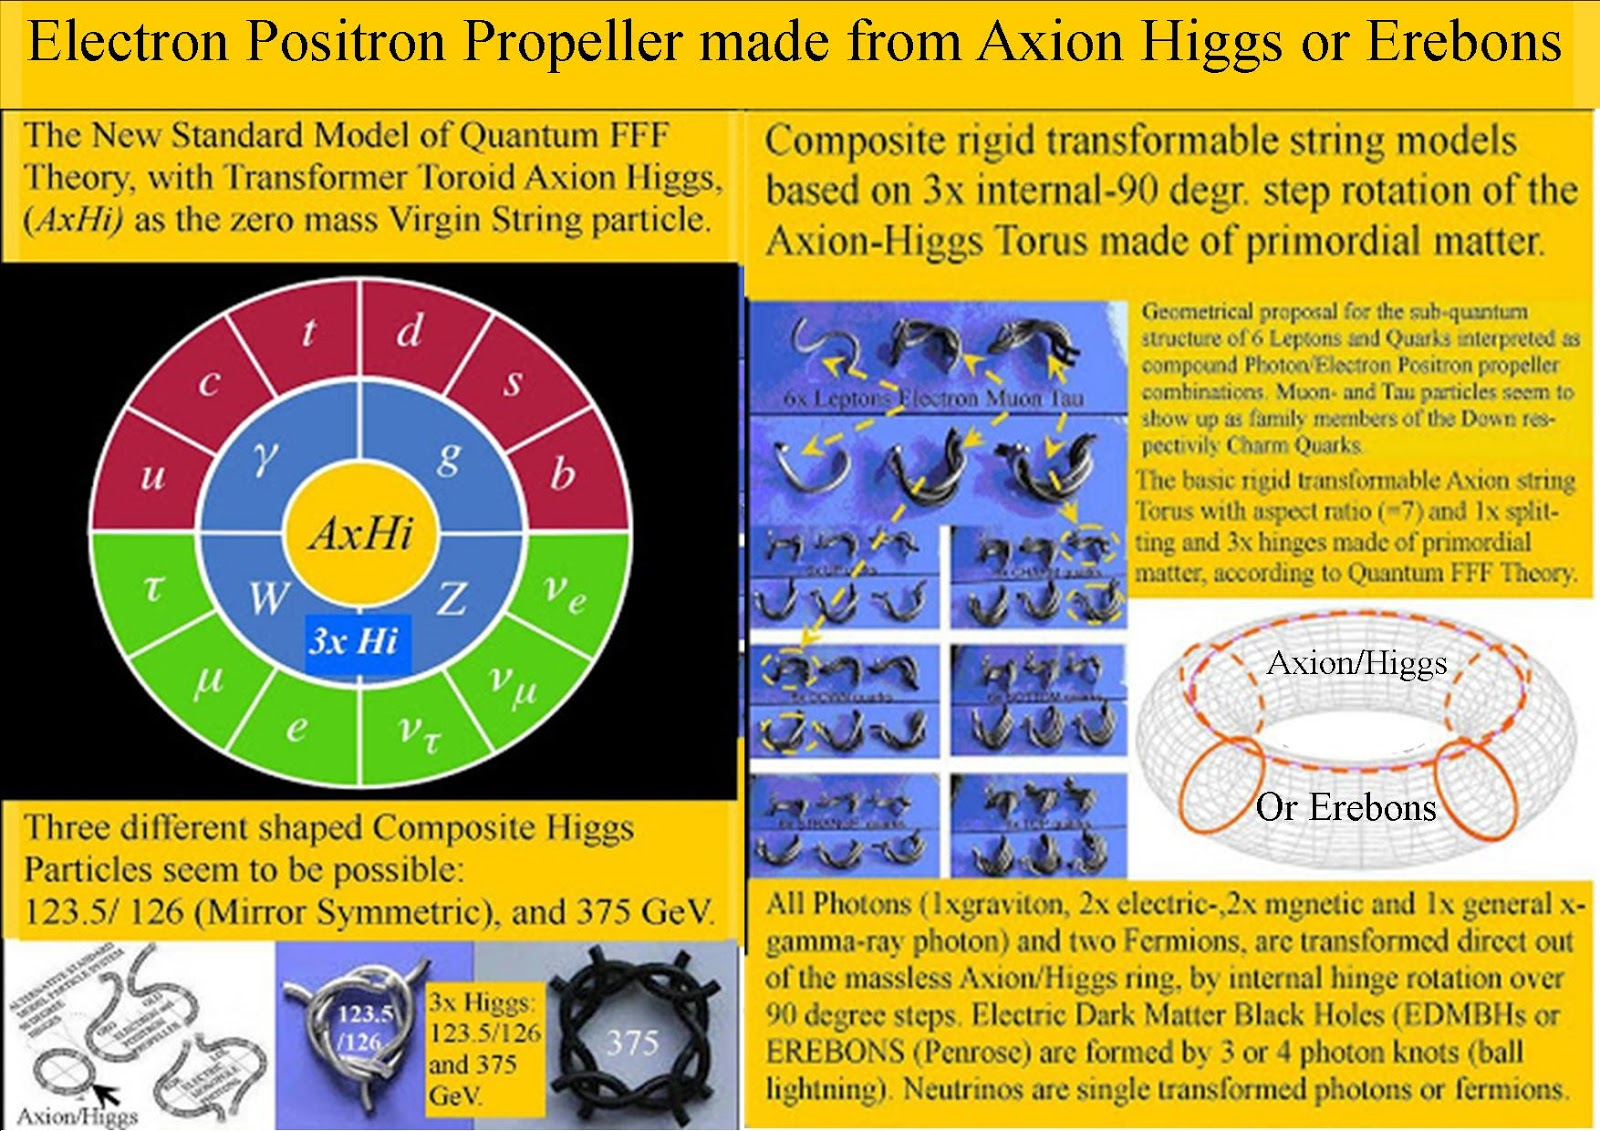 hight resolution of  black hole horizon only photon gluons and axion higgs erebons see also http vixra org pdf 1103 0002v4 pdf and http vixra org author leo vuyk